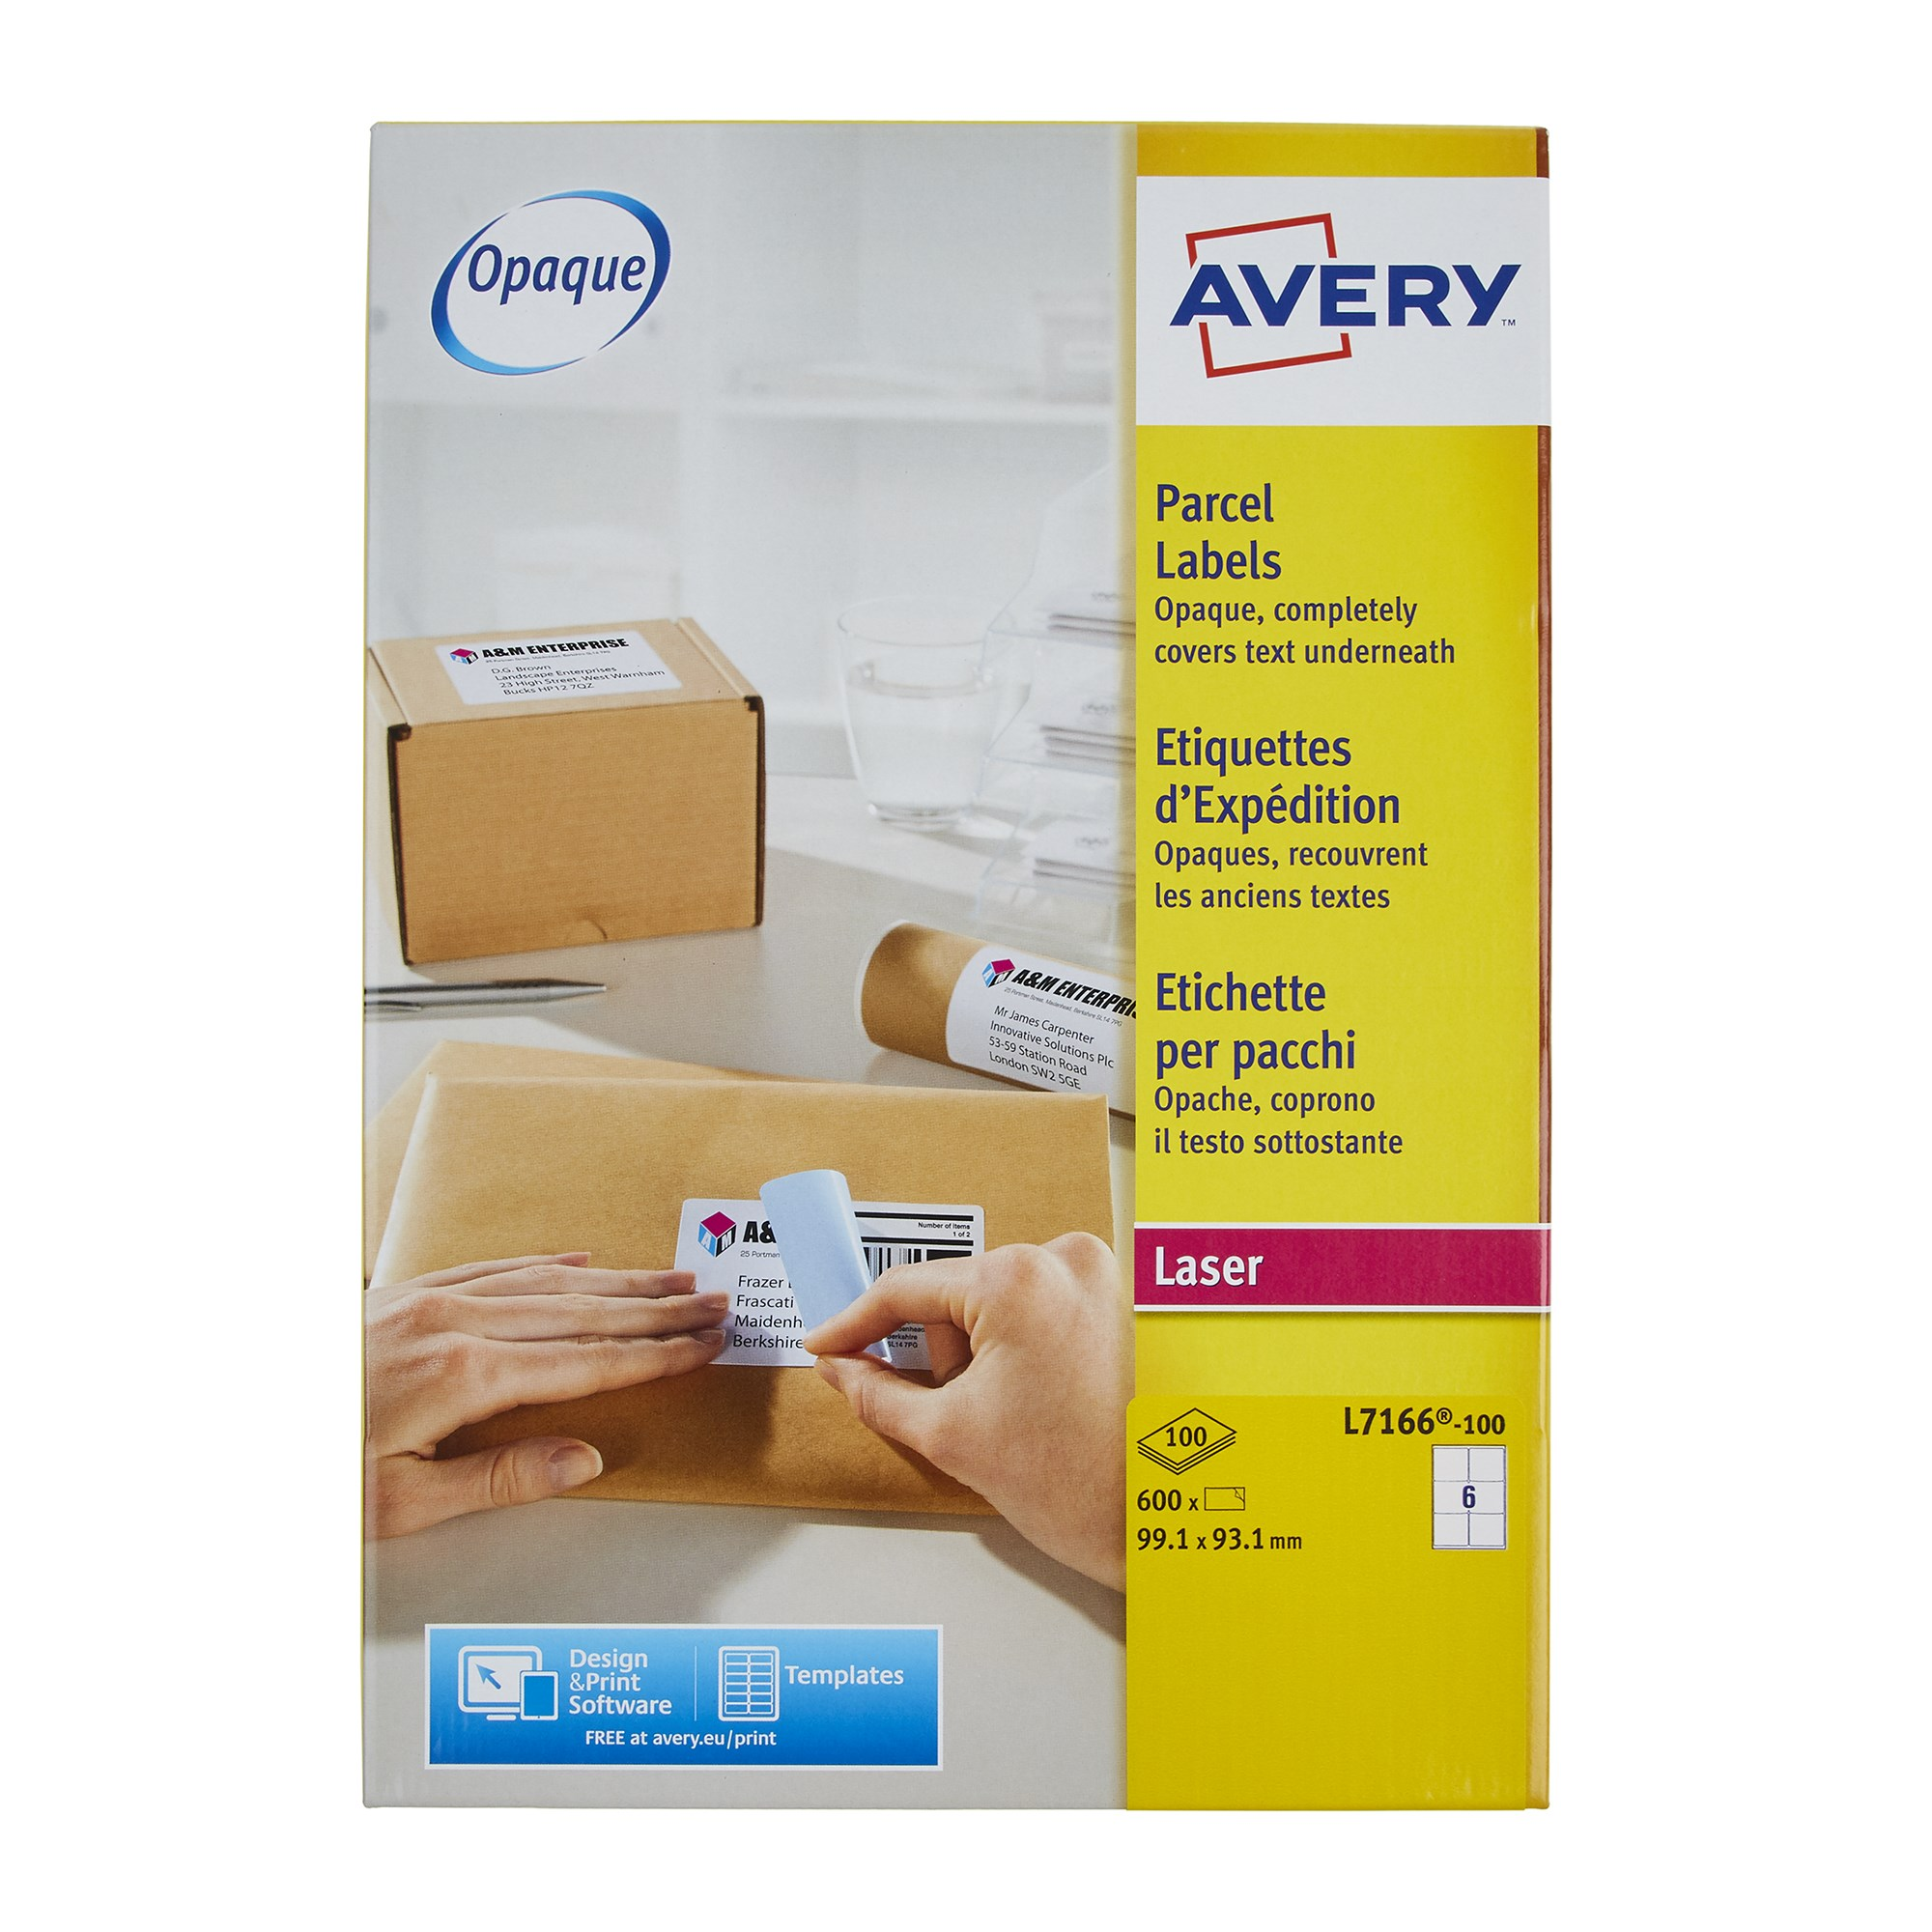 Avery® Las Parcel Labels 199.6 x 143.5mm